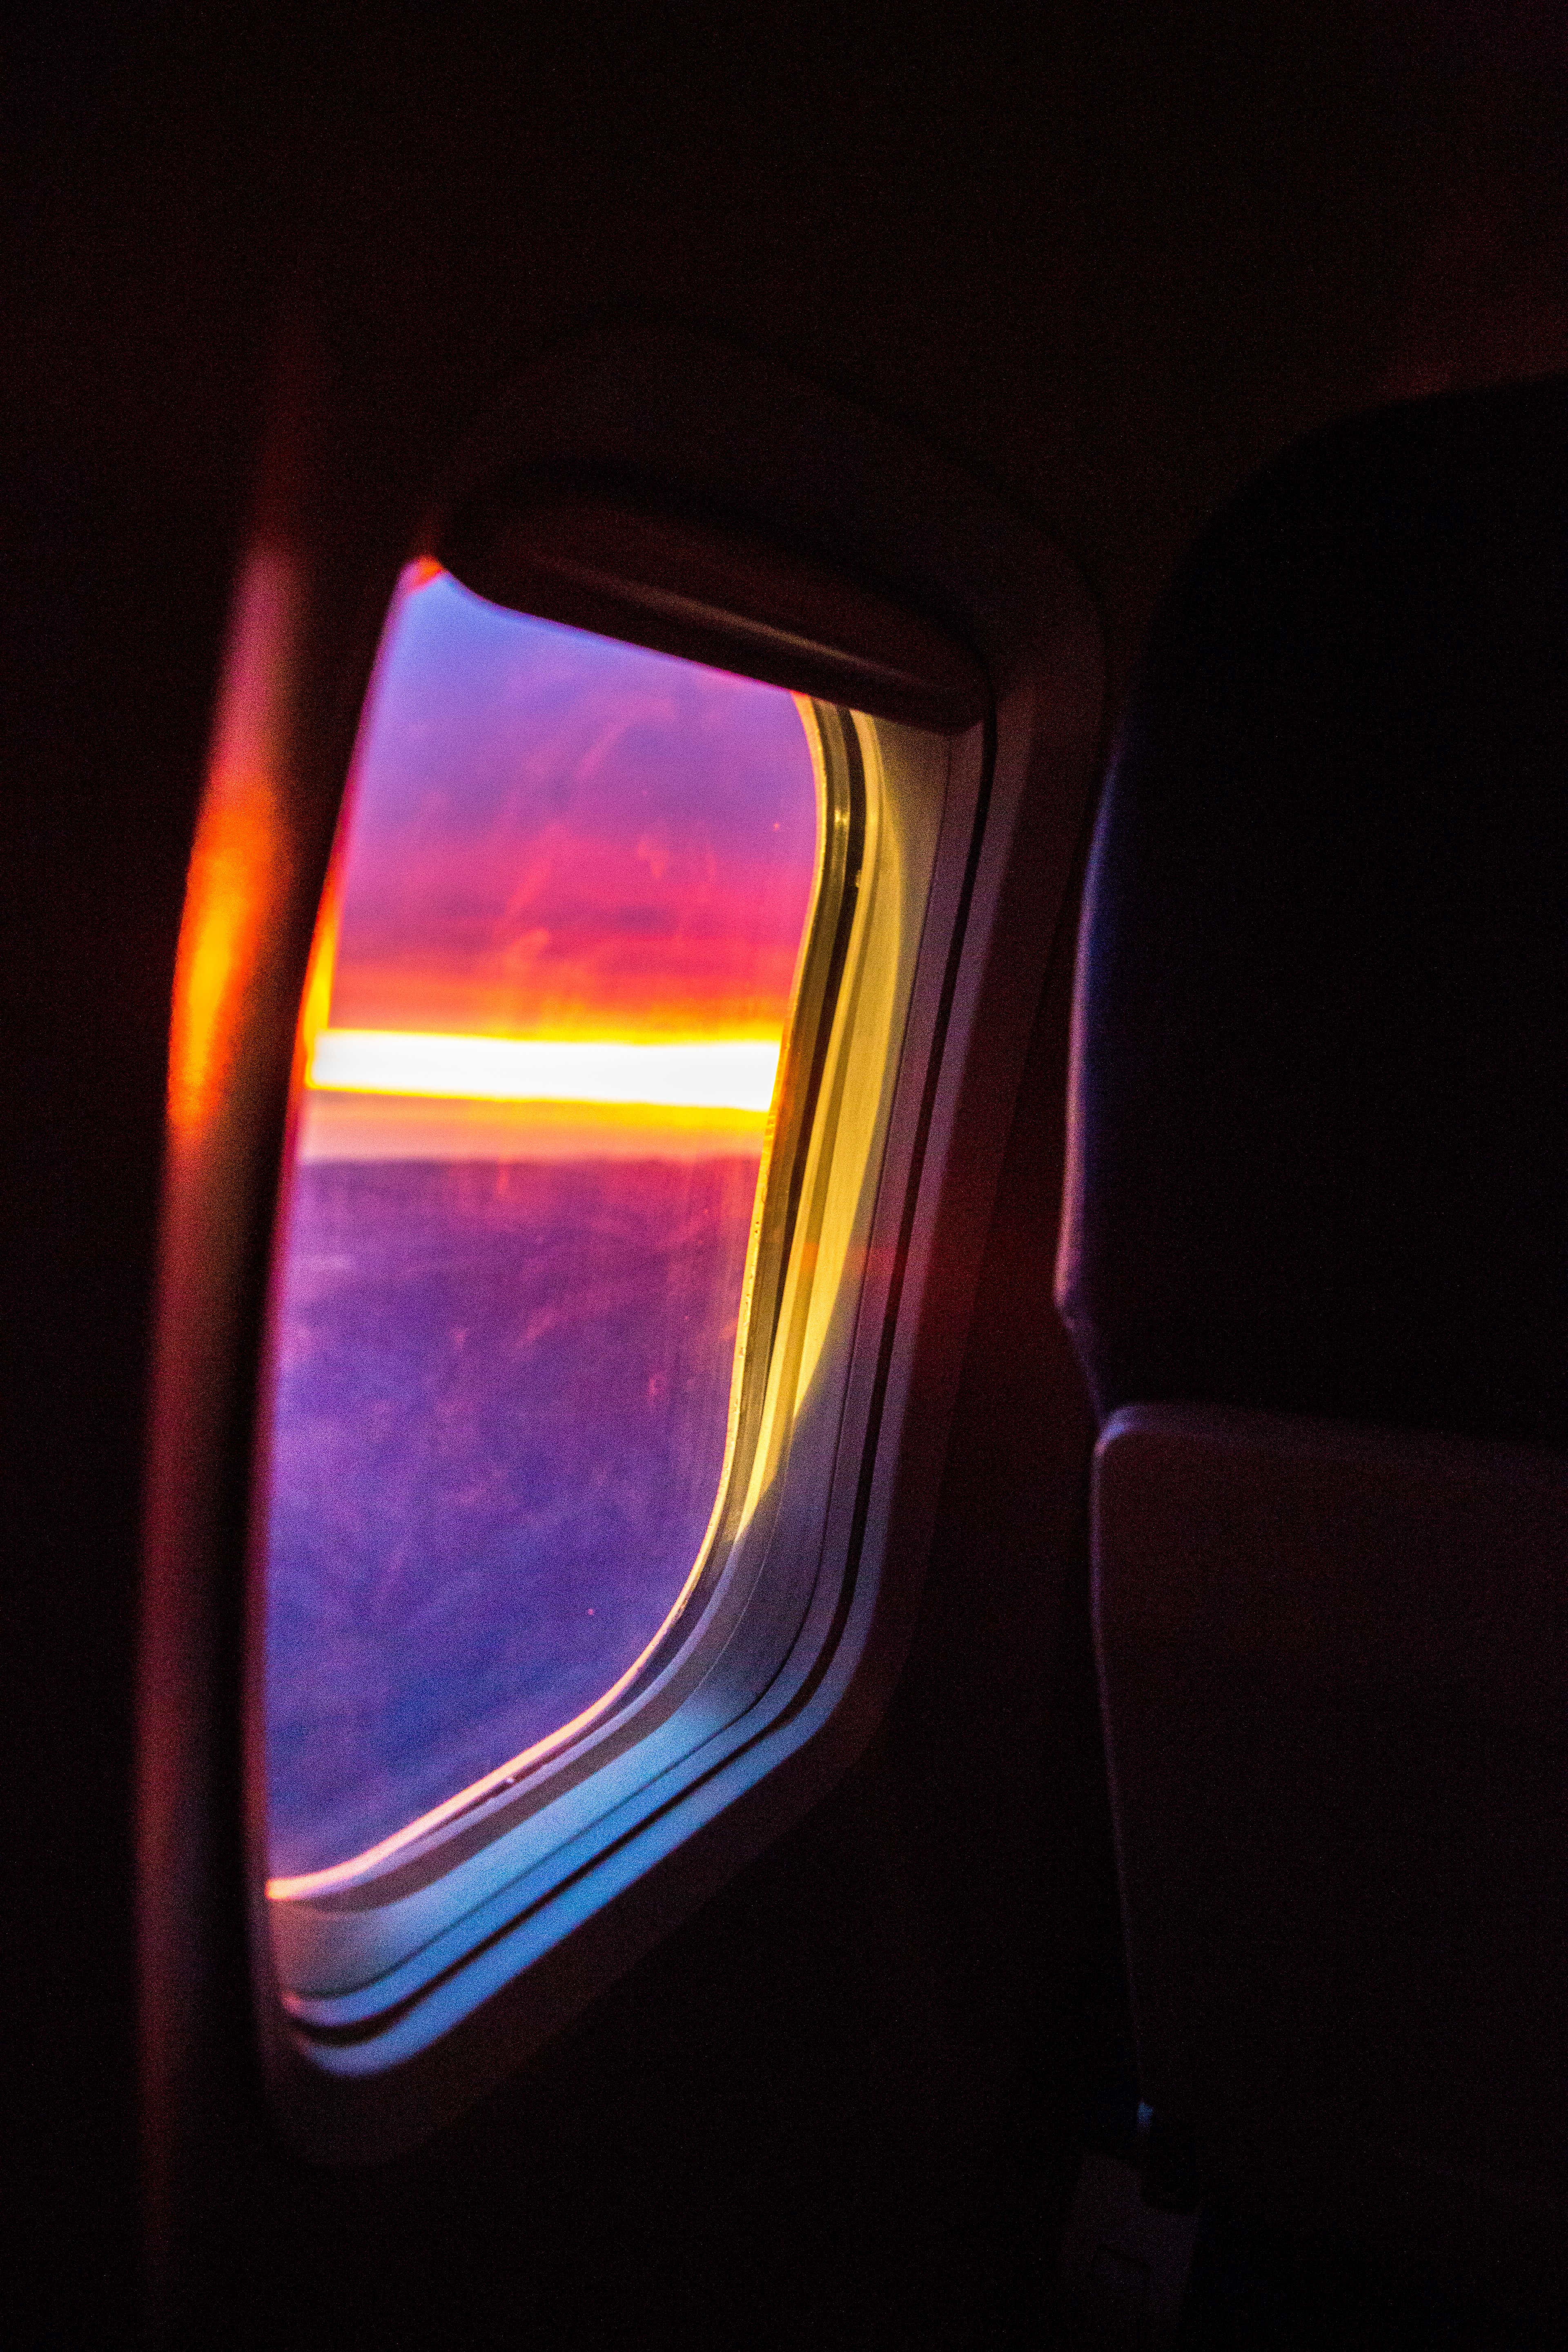 airplane view during golden hour